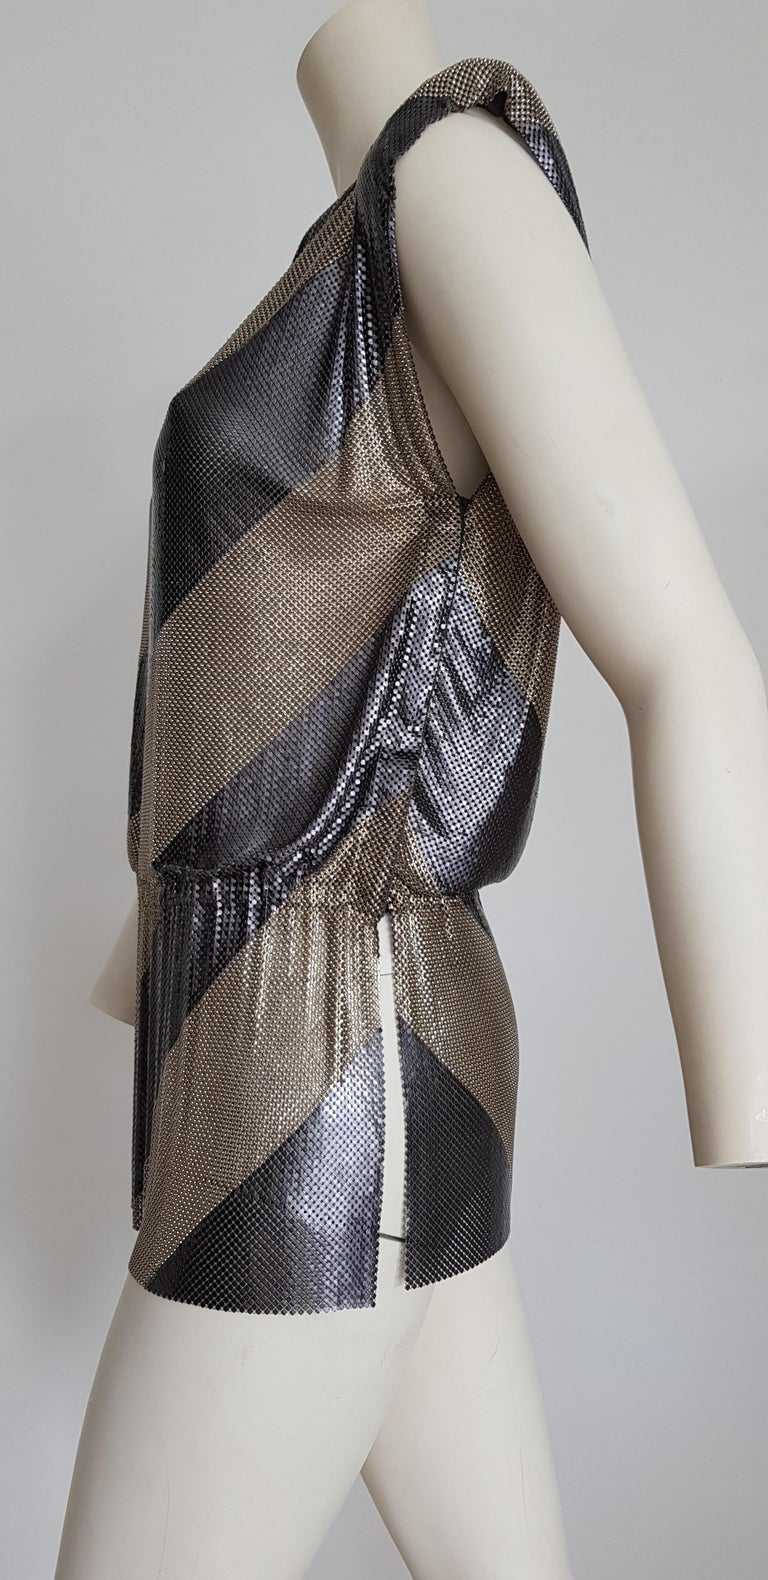 Gianni VERSACE Haute Couture titanium silver kaftan dress. Gianni's single piece unique design - Unworn, New.  SIZE: equivalent to about Small / Medium, please review approx measurements as follows in cm: lenght 70, chest underarm to underarm 90,